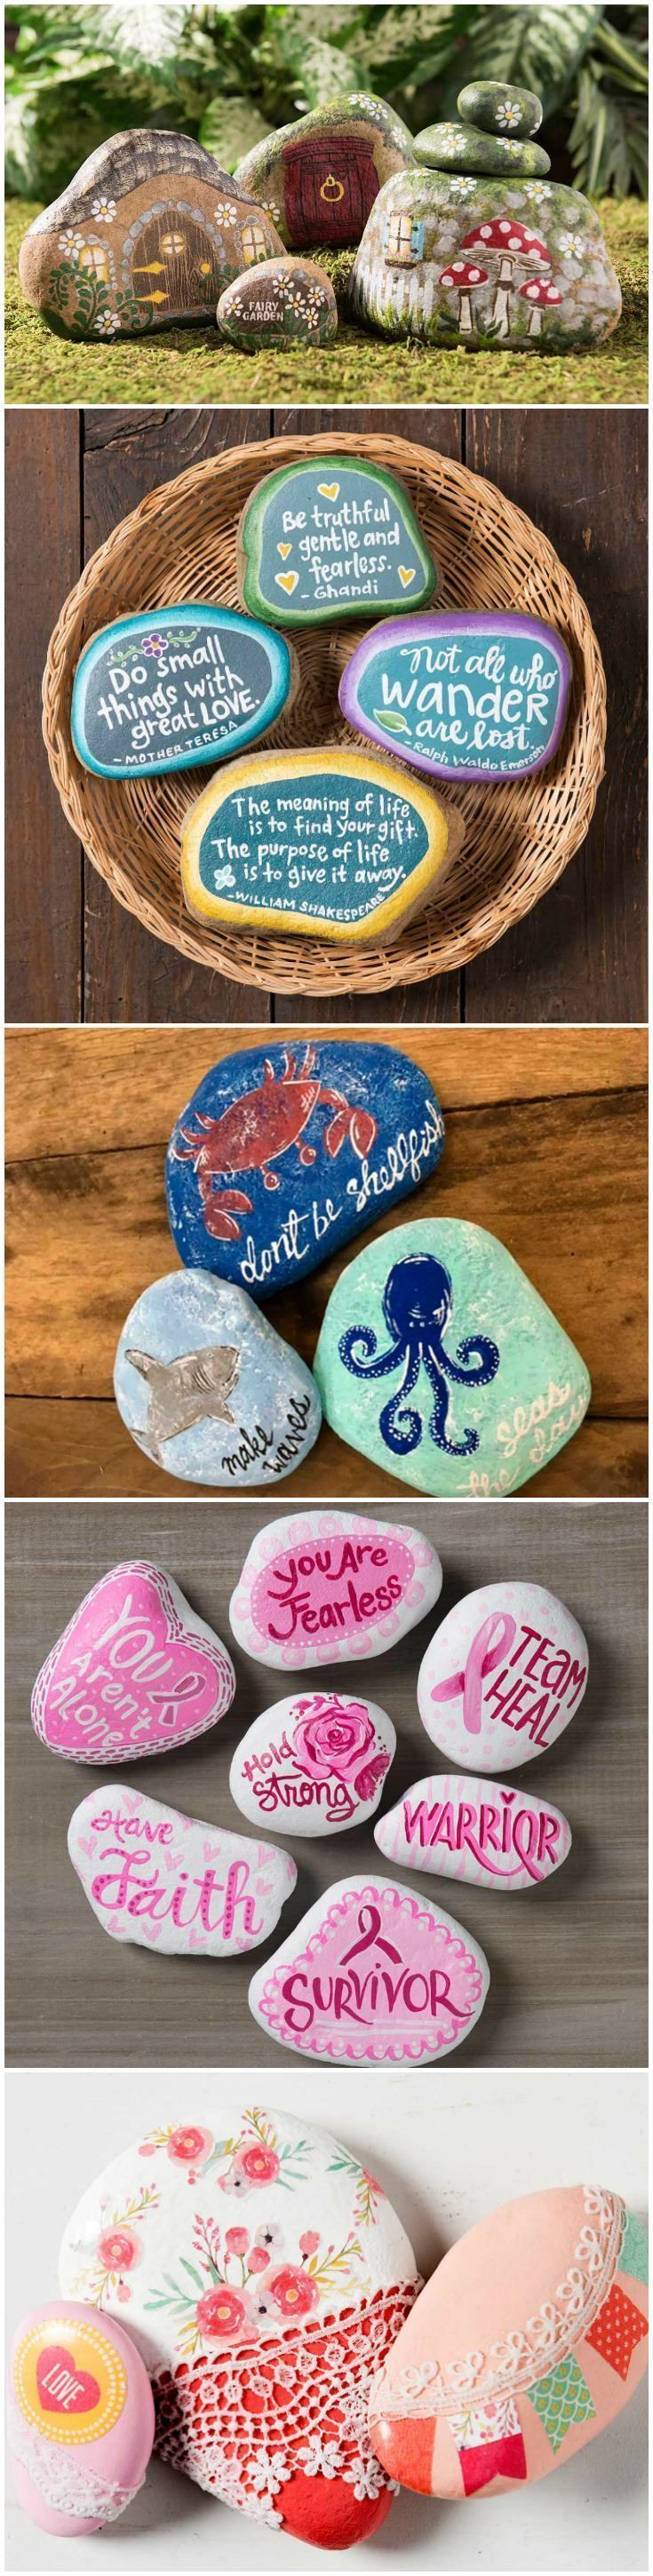 10 Easy Painted Rocks That Are Fun to Make & Tips! - Mod Podge Rocks